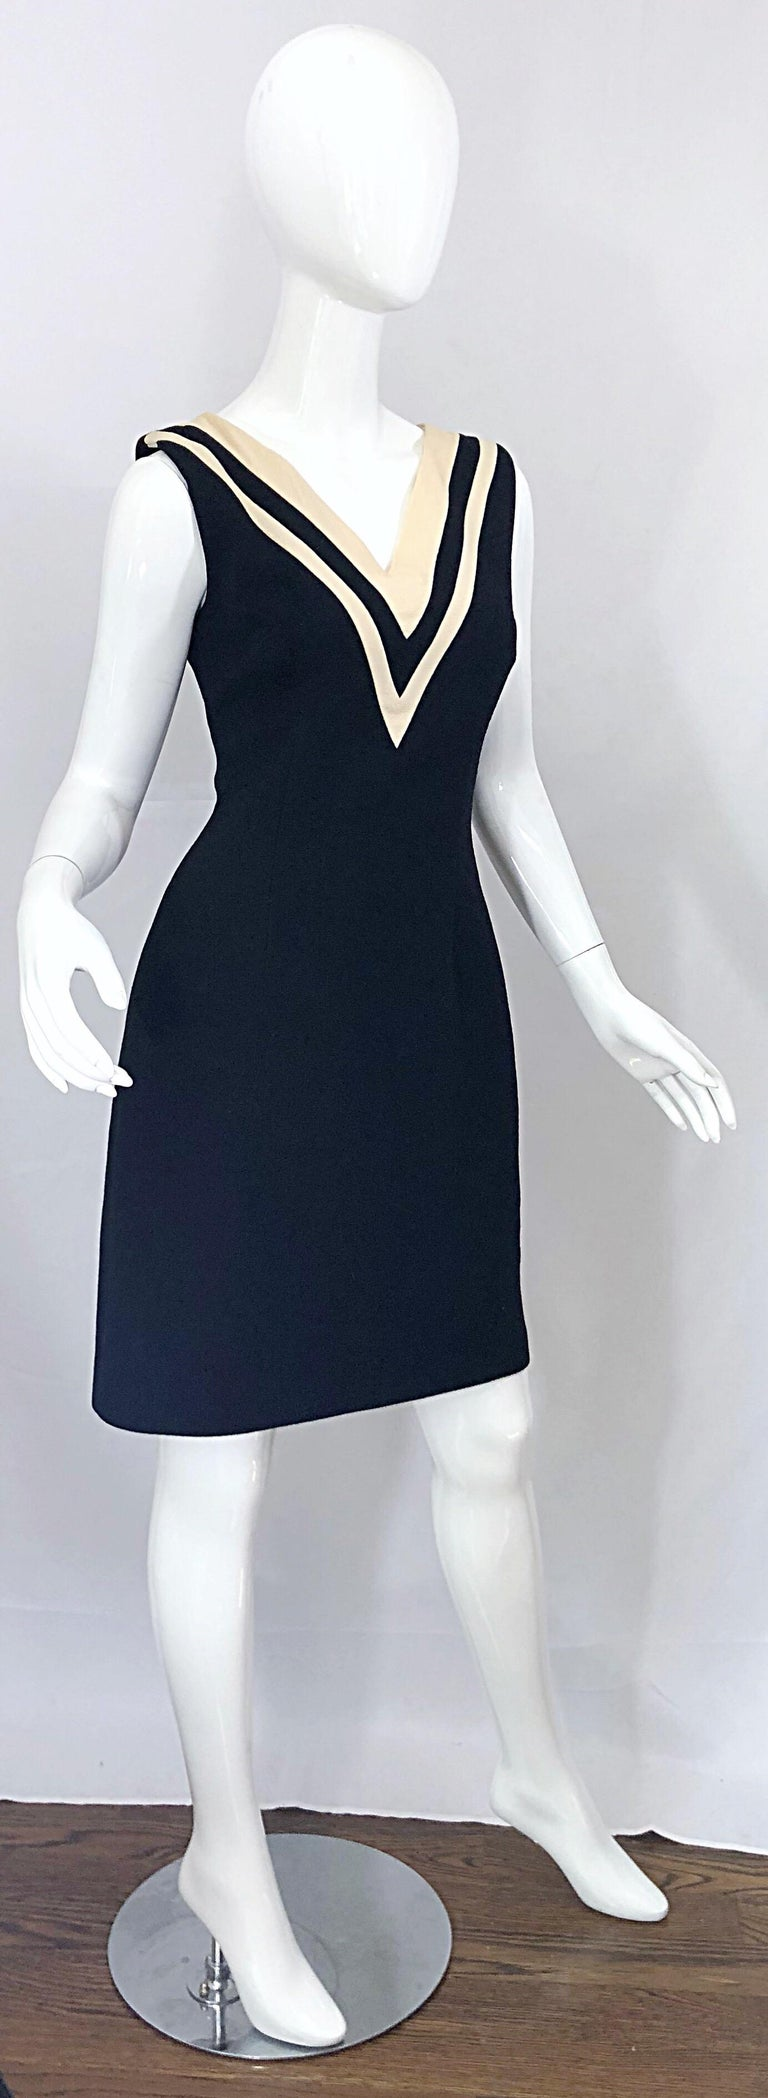 Dolce & Gabbana Size 42 / US 6 Black and Ivory 1990s Does 1960s Wool Shift Dress For Sale 7